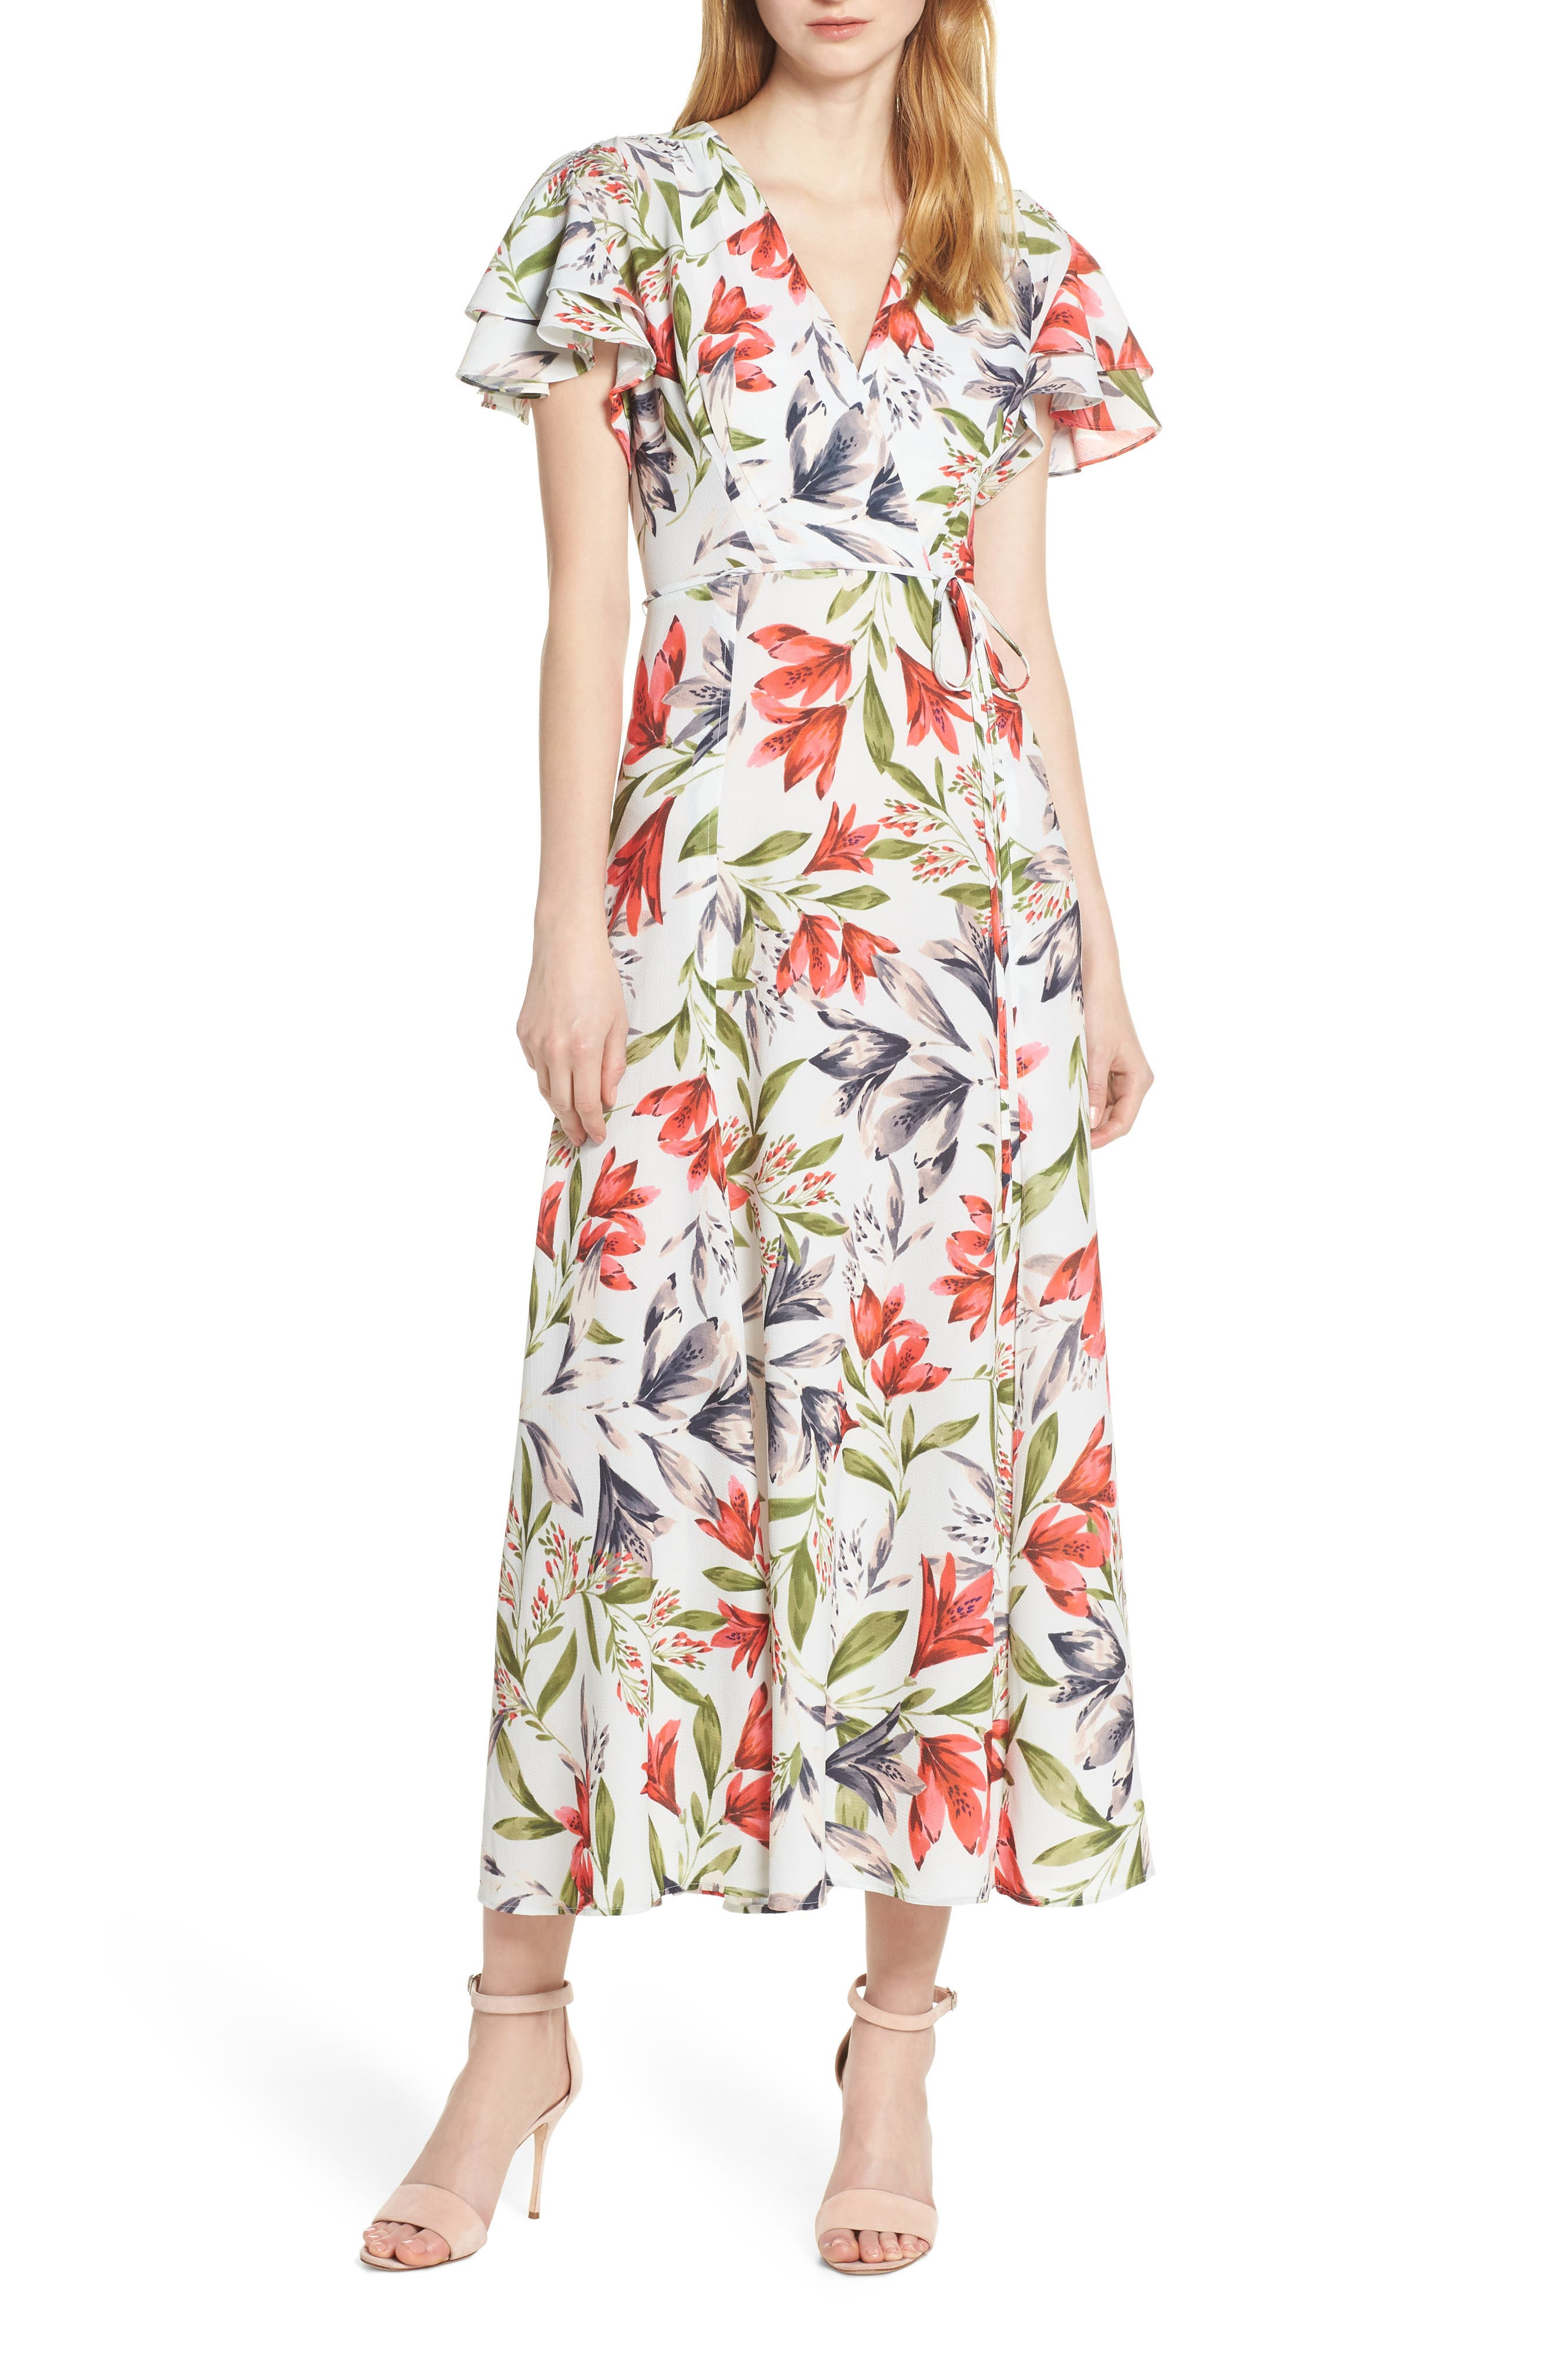 1930s Day Dresses, Afternoon Dresses History Womens French Connection Cadencia Cari Floral Maxi Dress $82.96 AT vintagedancer.com